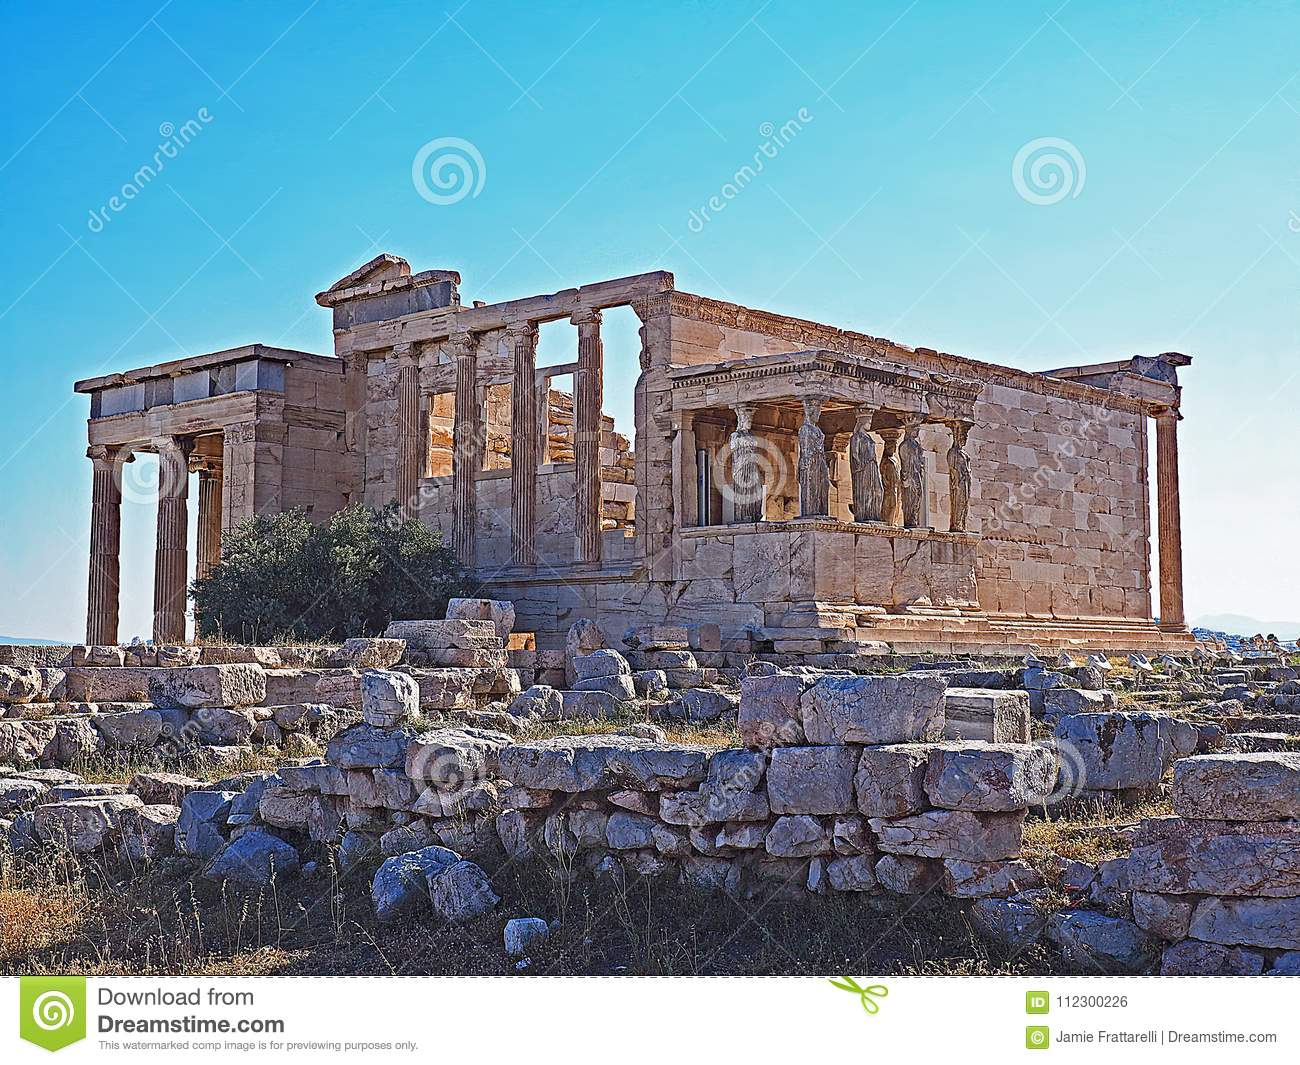 The porch of the Caryatids and the Erecthion at the Acropolis in Athens, Greece